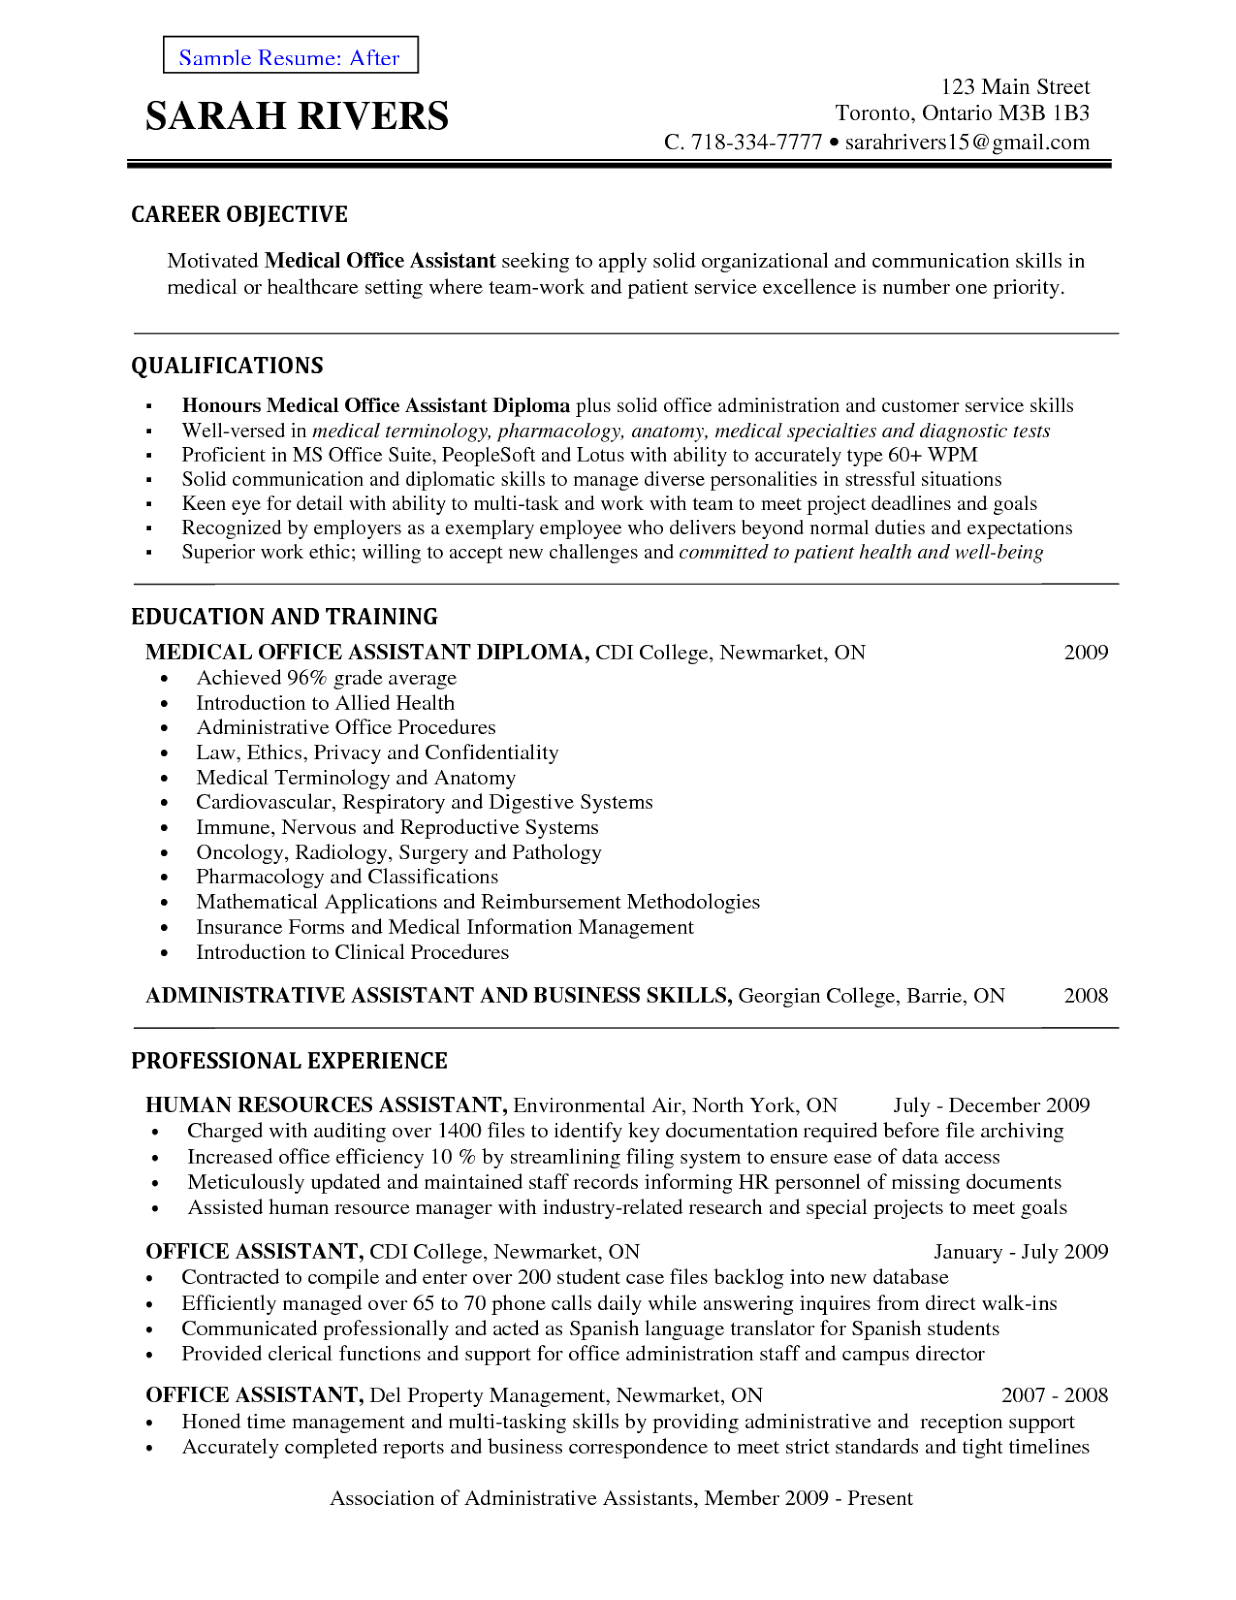 scholarship essay examples about career goals essay example millicent rogers museum essay example millicent rogers museum - Sample Job Objective For Resume